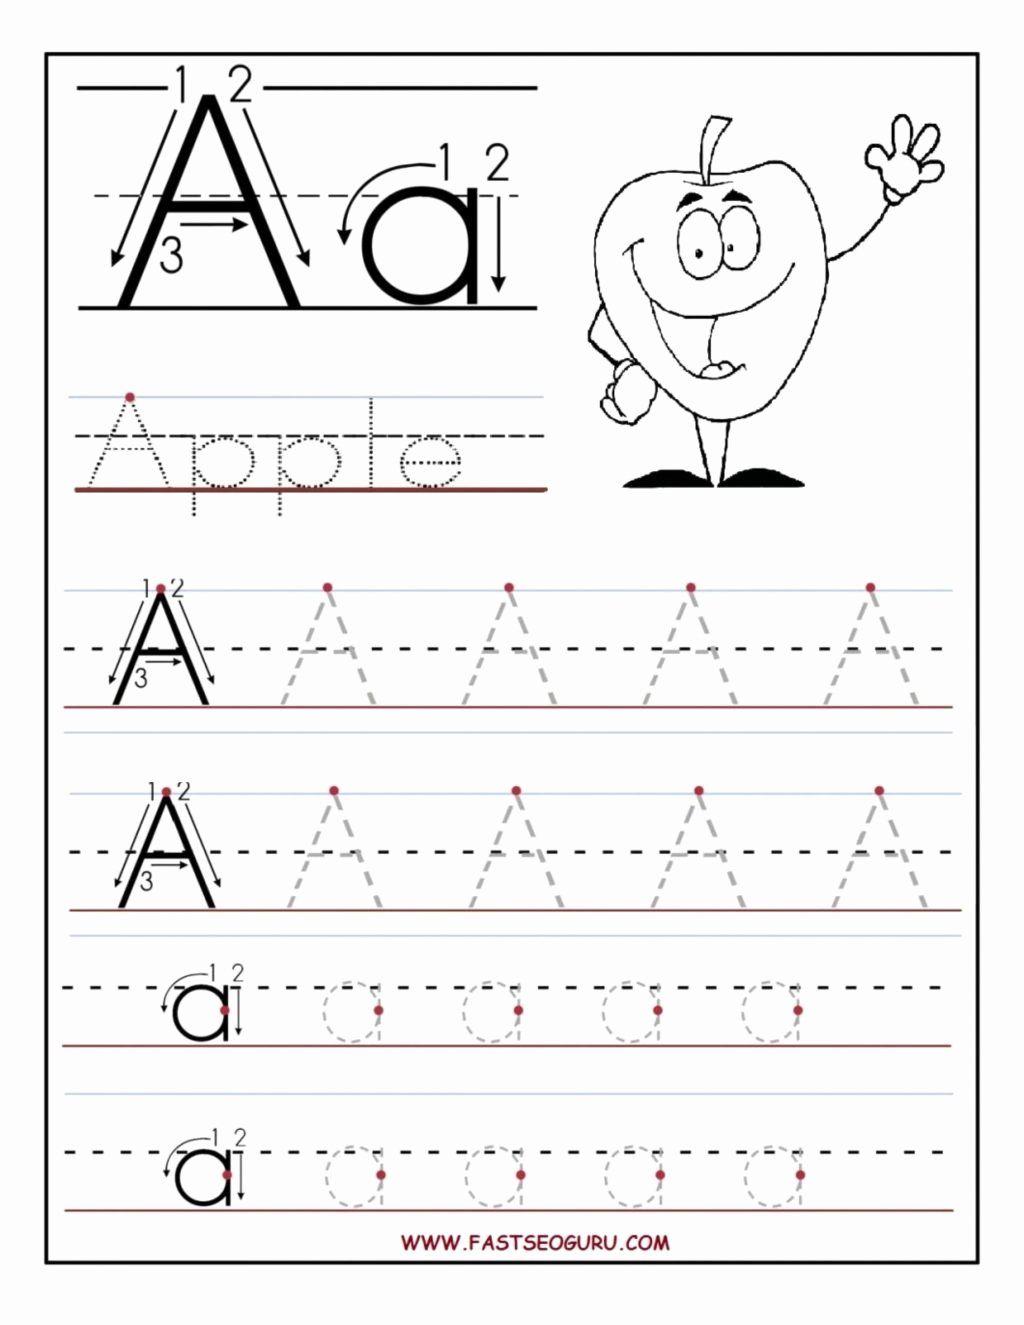 worksheet trace letters tracing worksheets for astounding preschool letter printable alphabetindergarten free learning pages multiplicationids printables workbooks earth 1024x1325